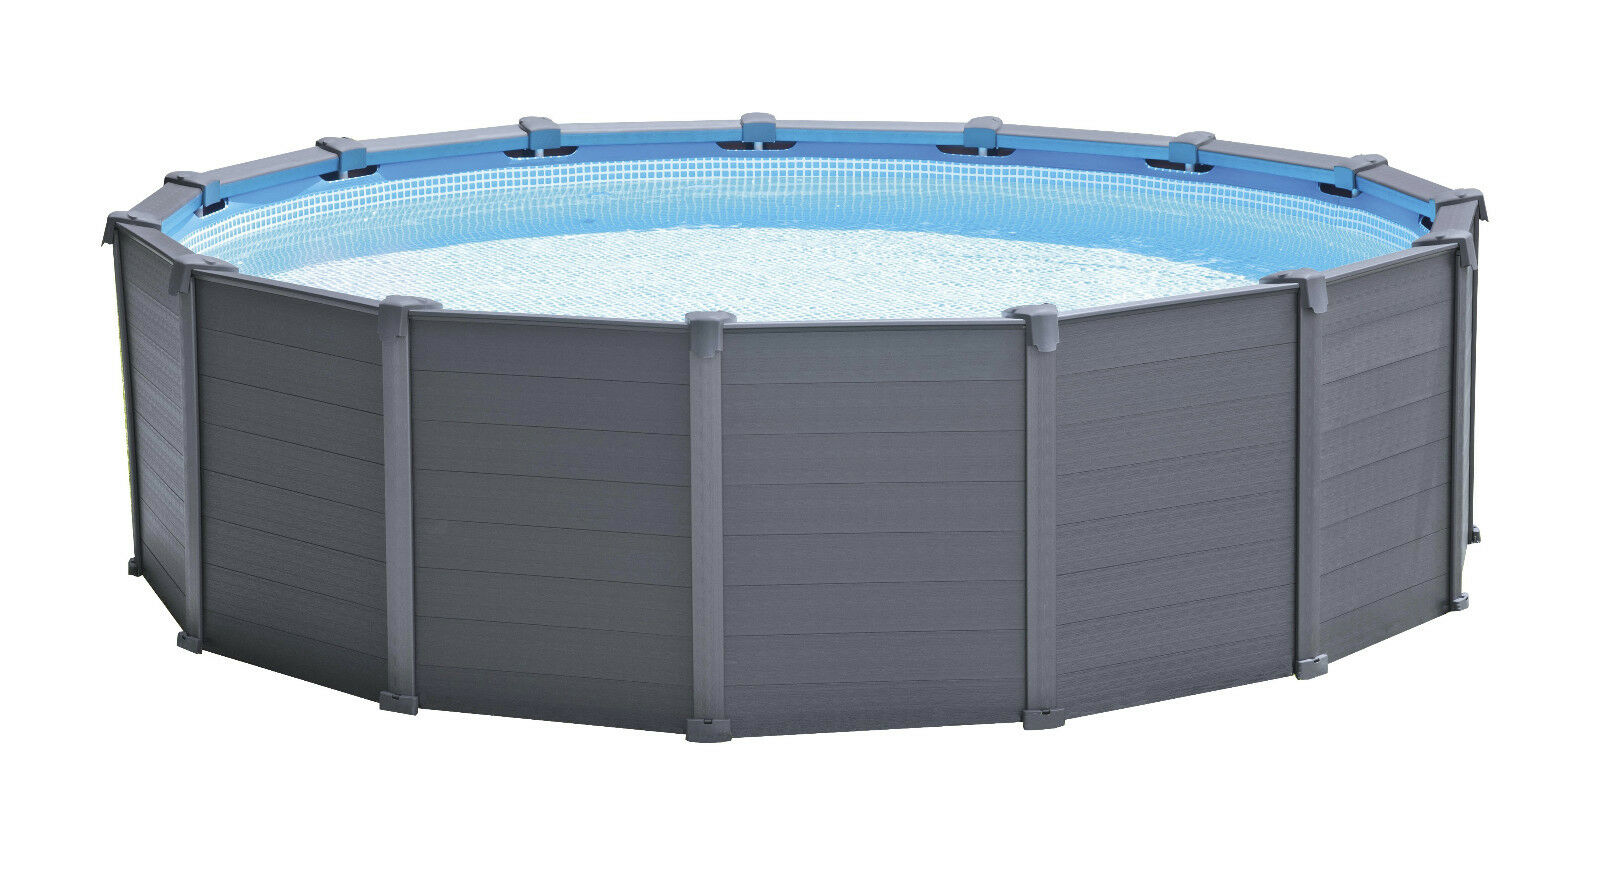 Jilong Poolheizung 3000w Intex Frame Pool Set Graphit Ø 478 478 478 X 124 Cm 26382gn 6ce2d0